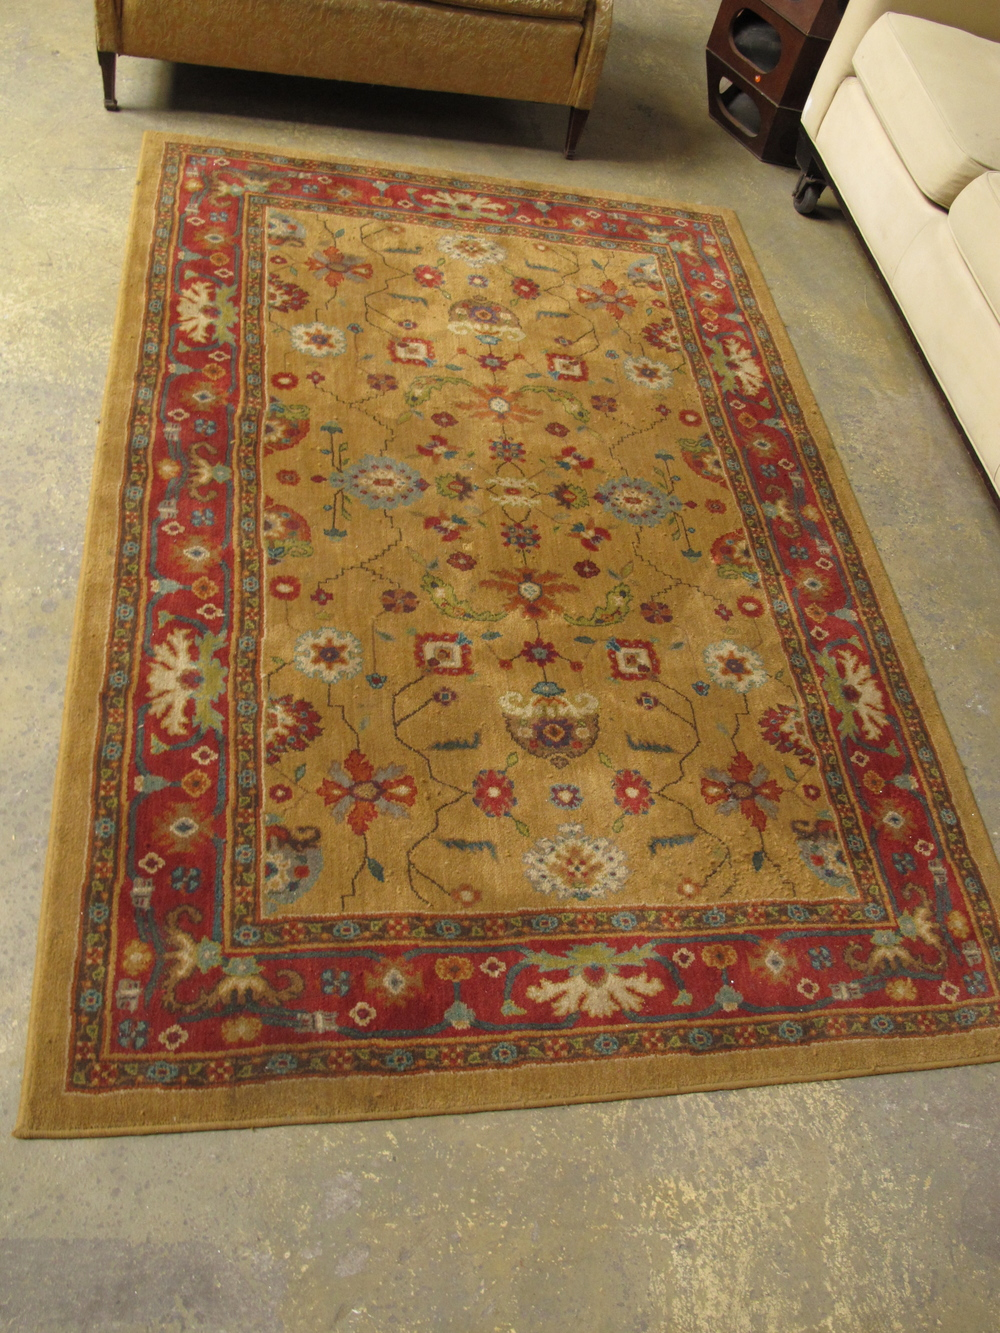 Production Rug $125